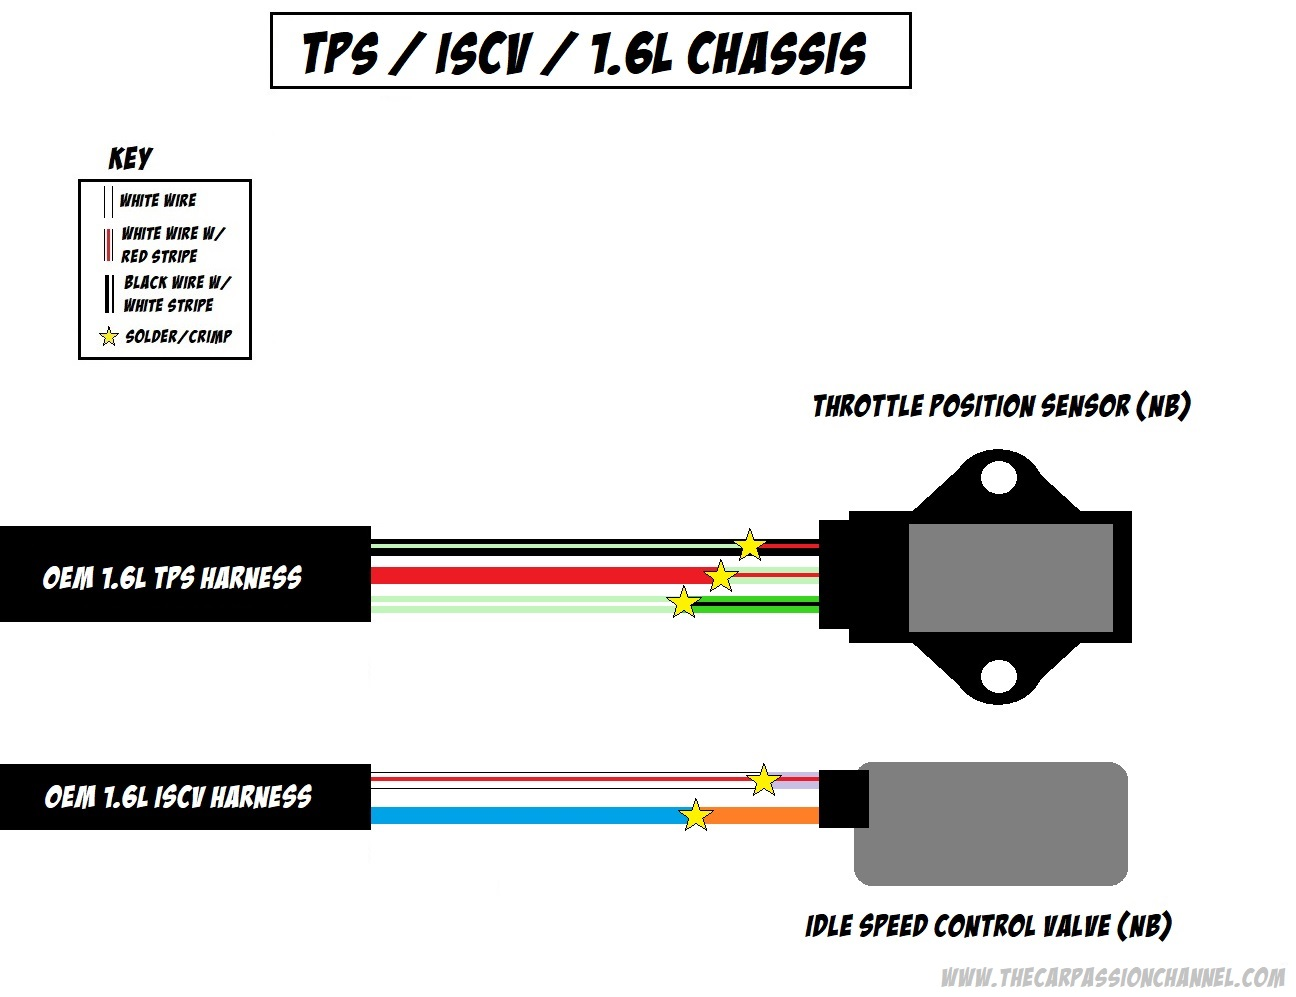 Chevy Turbo 400 Transmission Wiring Diagram Chevy Truck ...